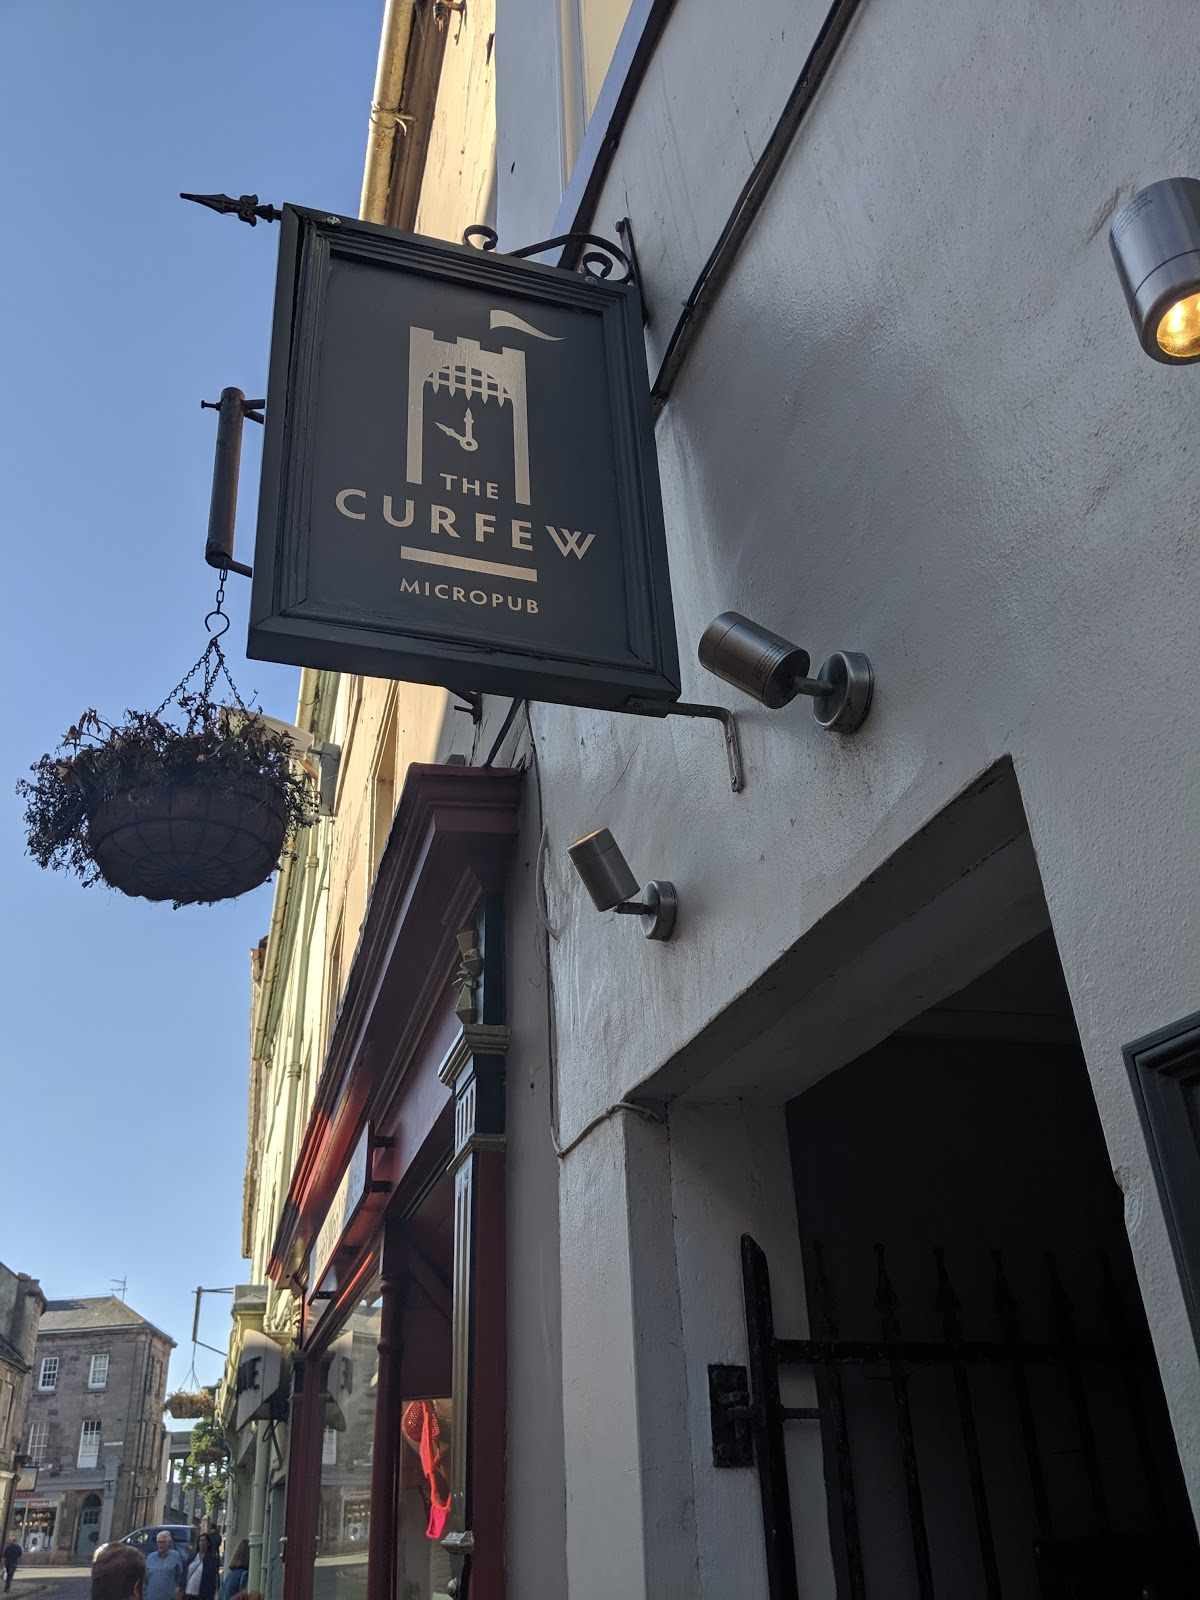 Things to do in Berwick - the curfew micropub